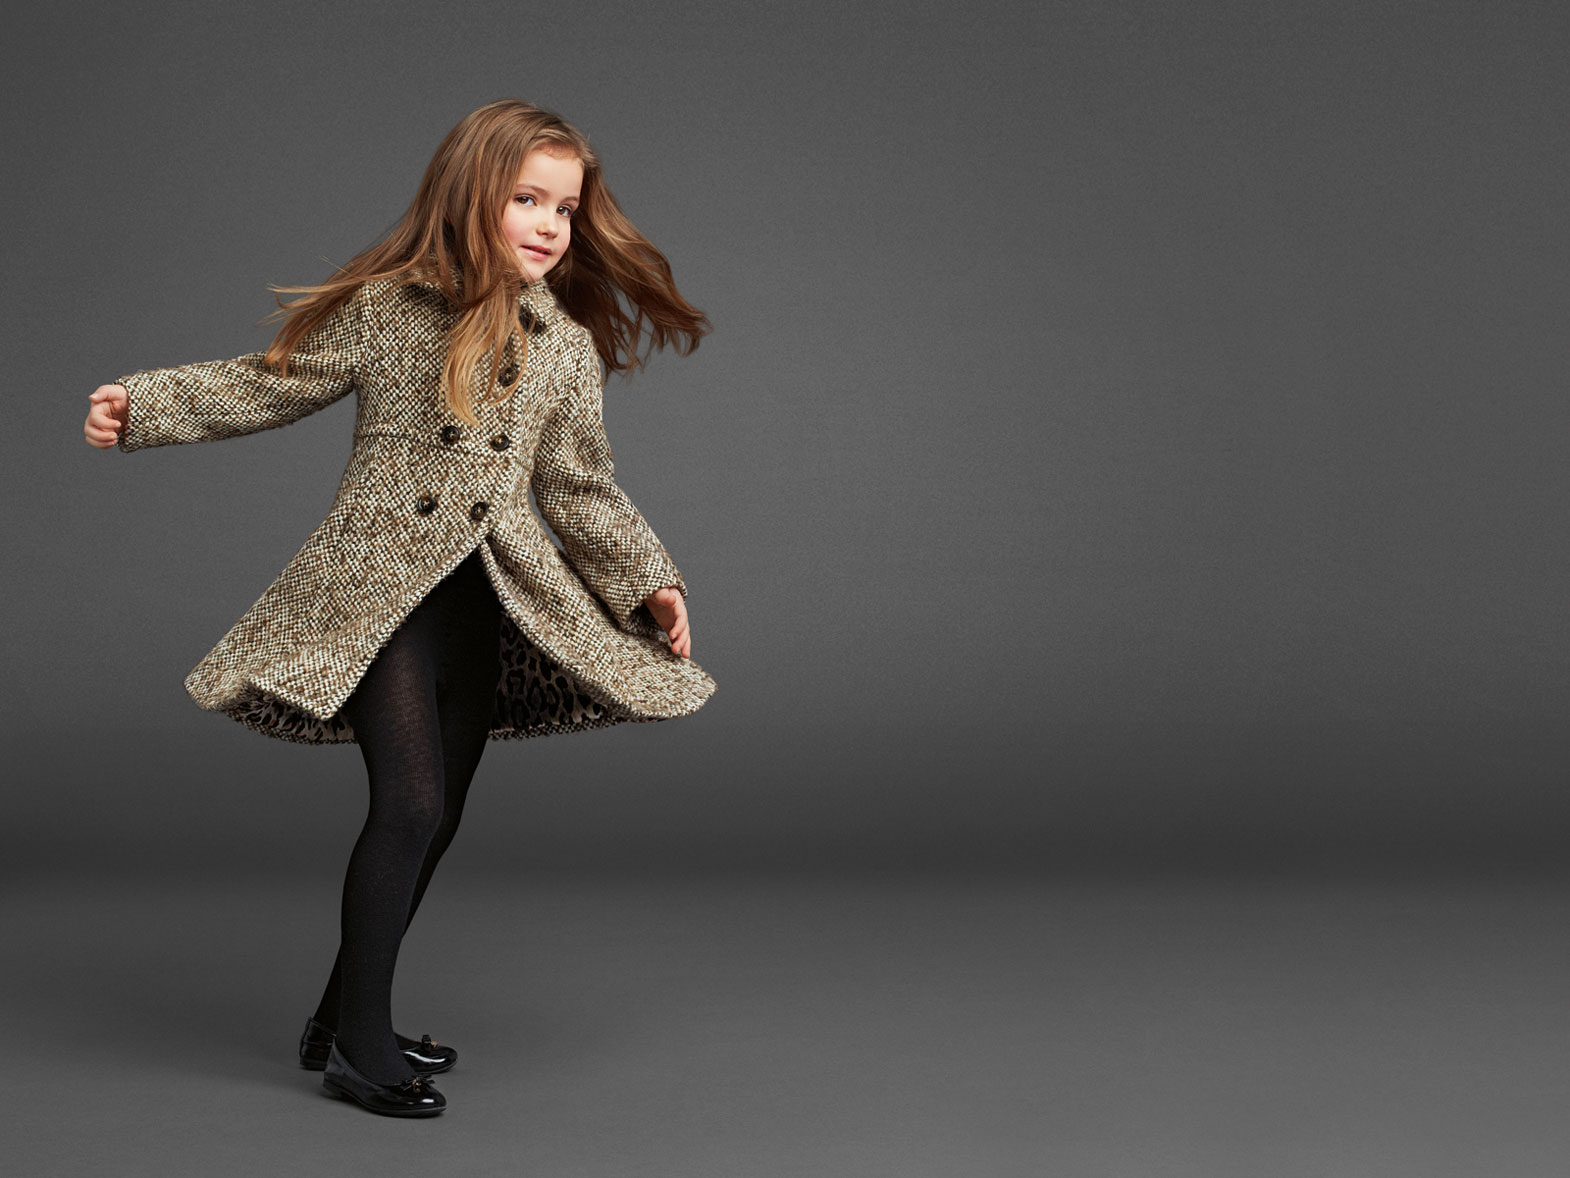 dolce And gabbana Fw 2014 kids collection 14